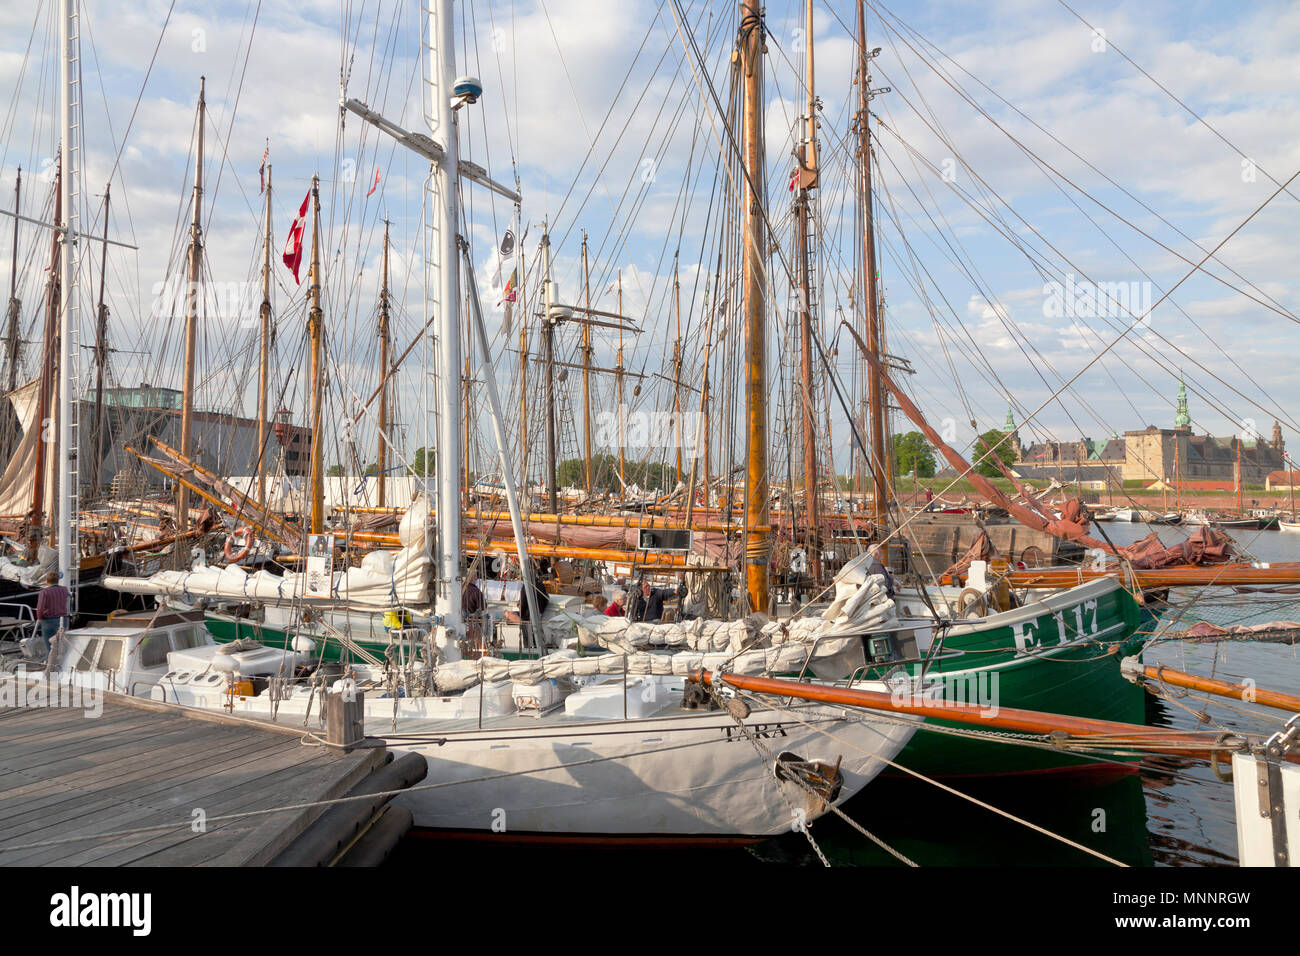 Historical days of more than 100 wooden ships in Elsinore at Pentecost or Whitsun in Helsingør, Elsinore, Denmark. Kronborg Castle in distance. - Stock Image